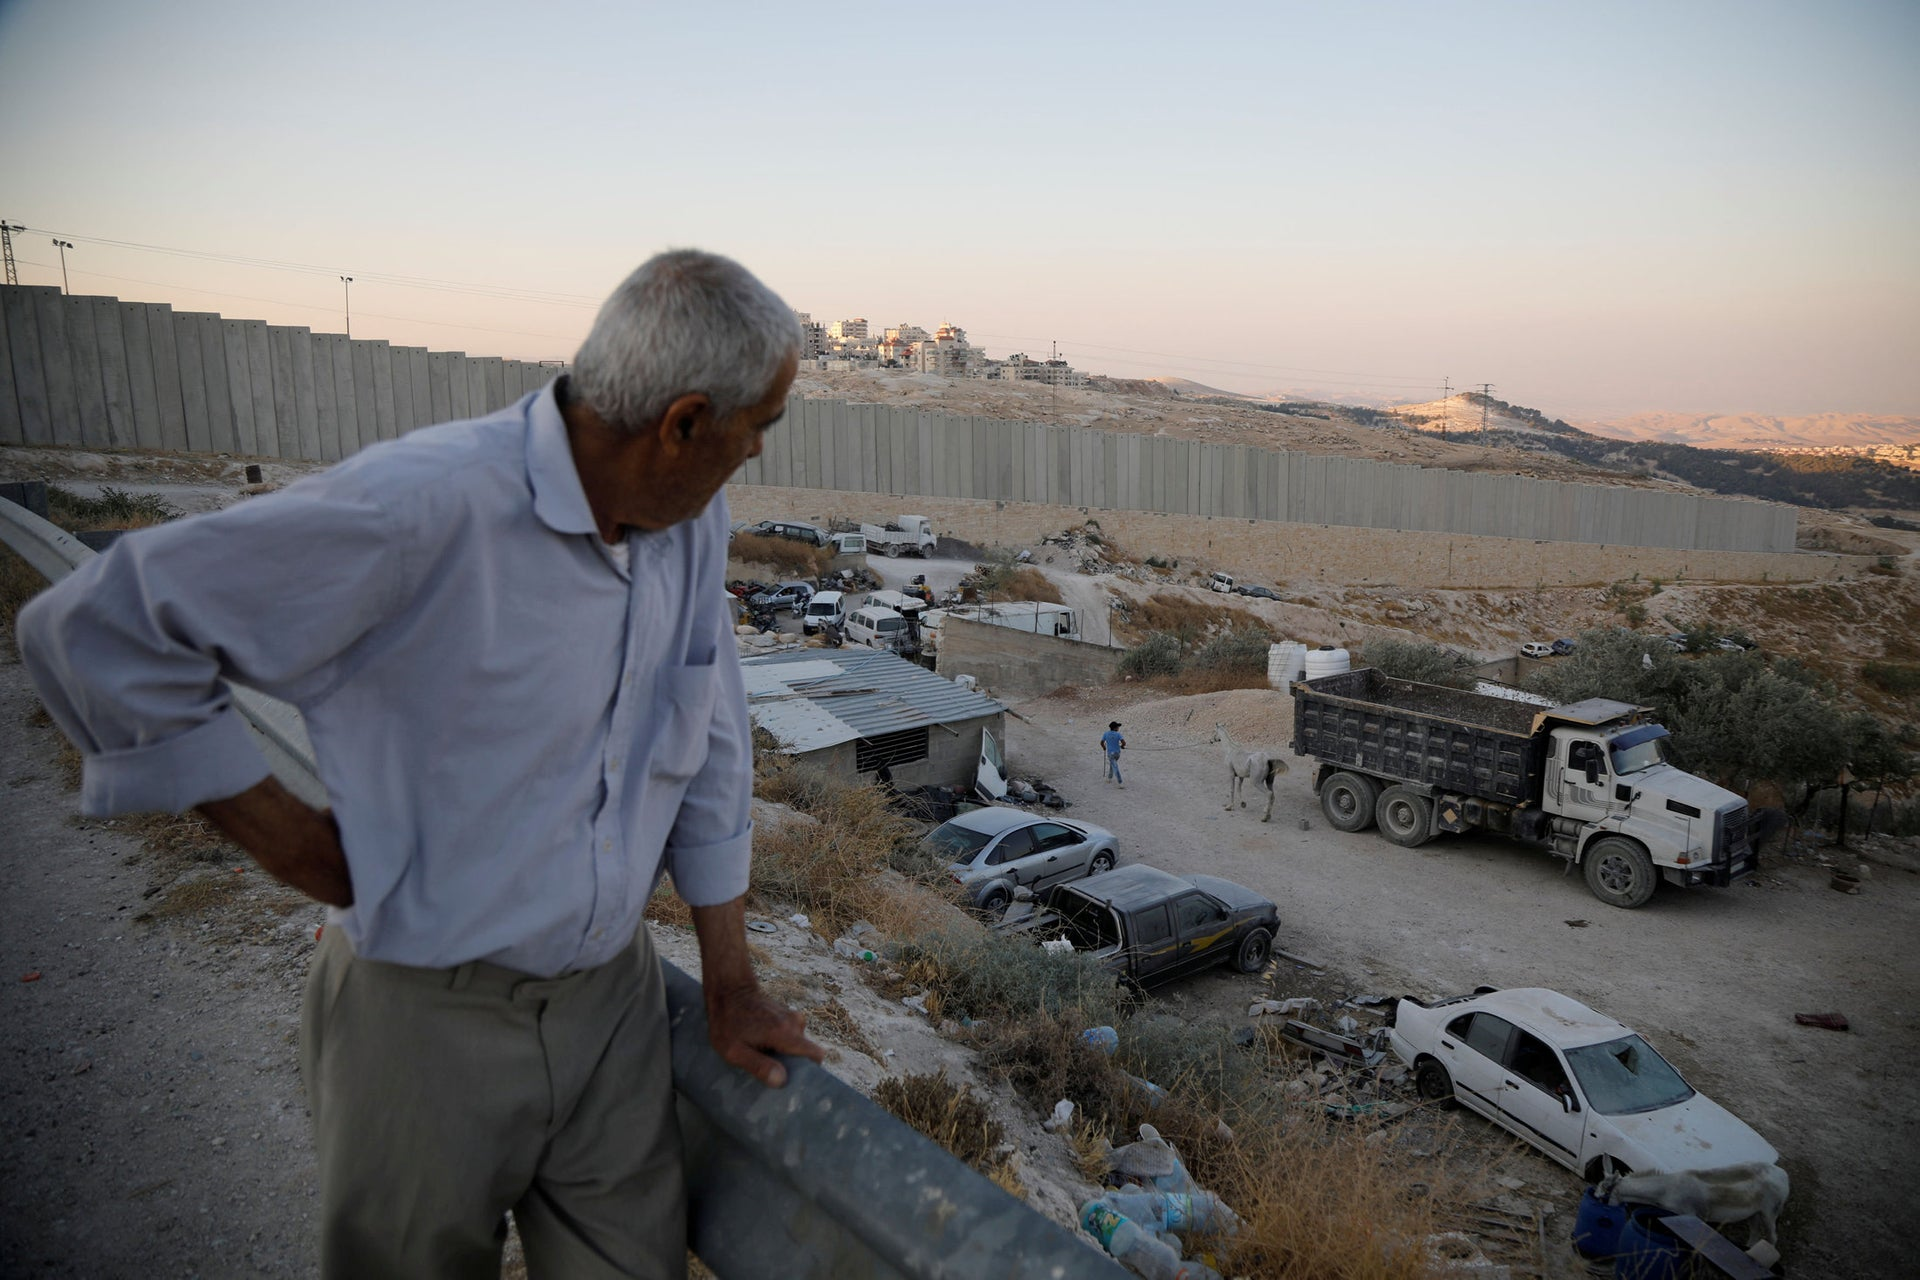 Palestinian man Ali Farun, 74, stands near a section of the Israeli barrier in al-Eizariya town close to the Jewish settlement of Maale Adumim